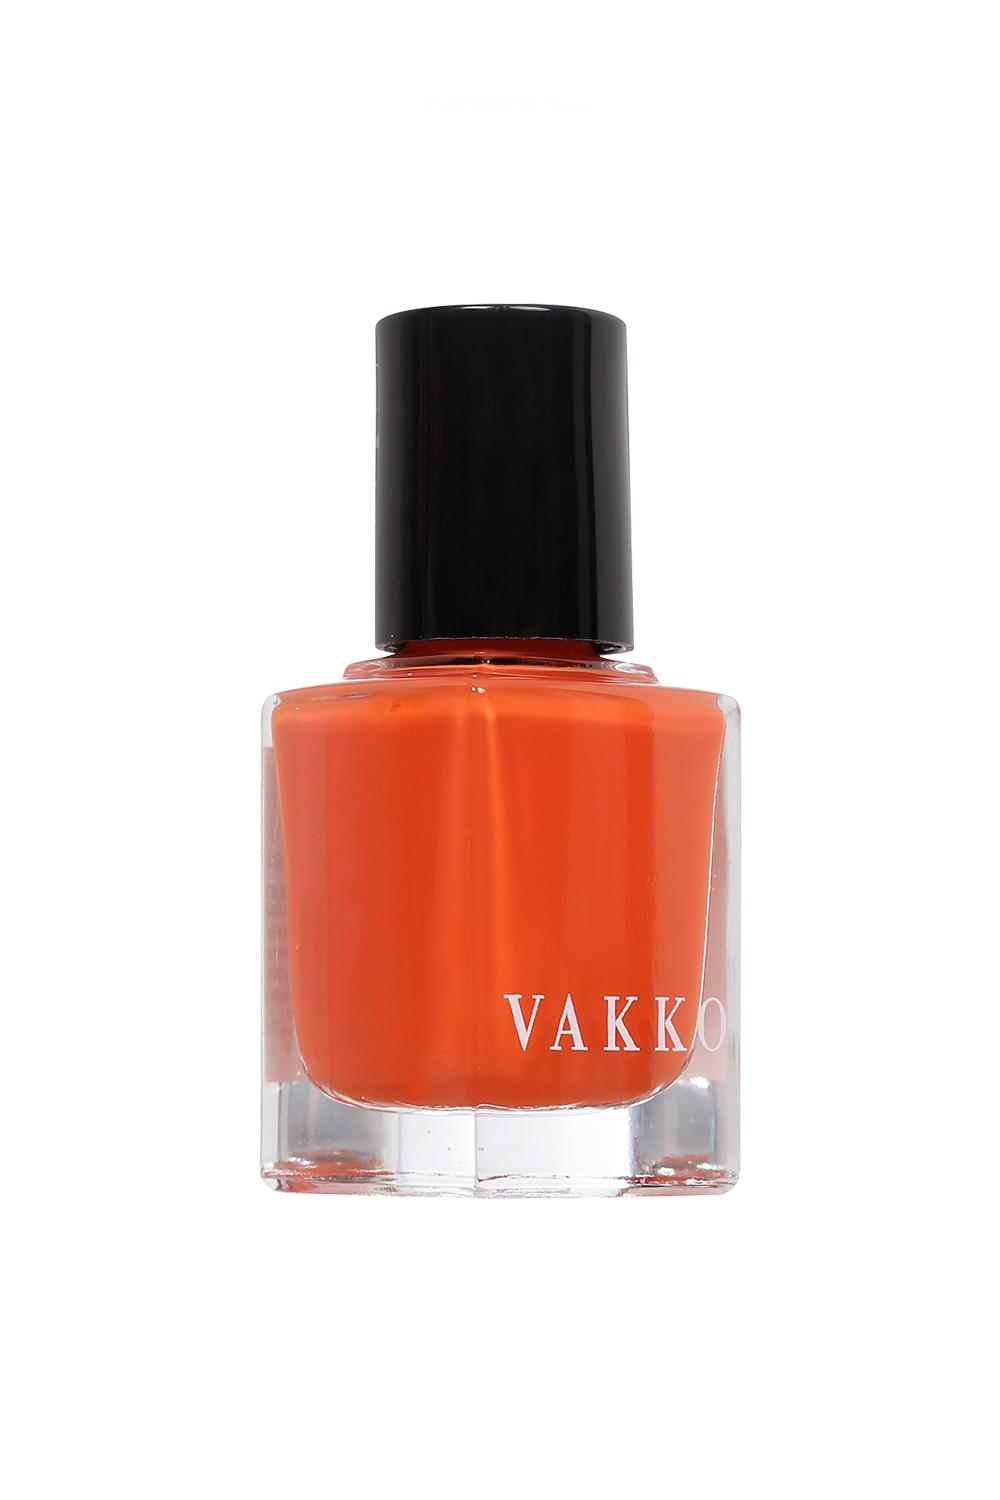 L'OJE DE VAKKO V20 ORANGE 868238517909